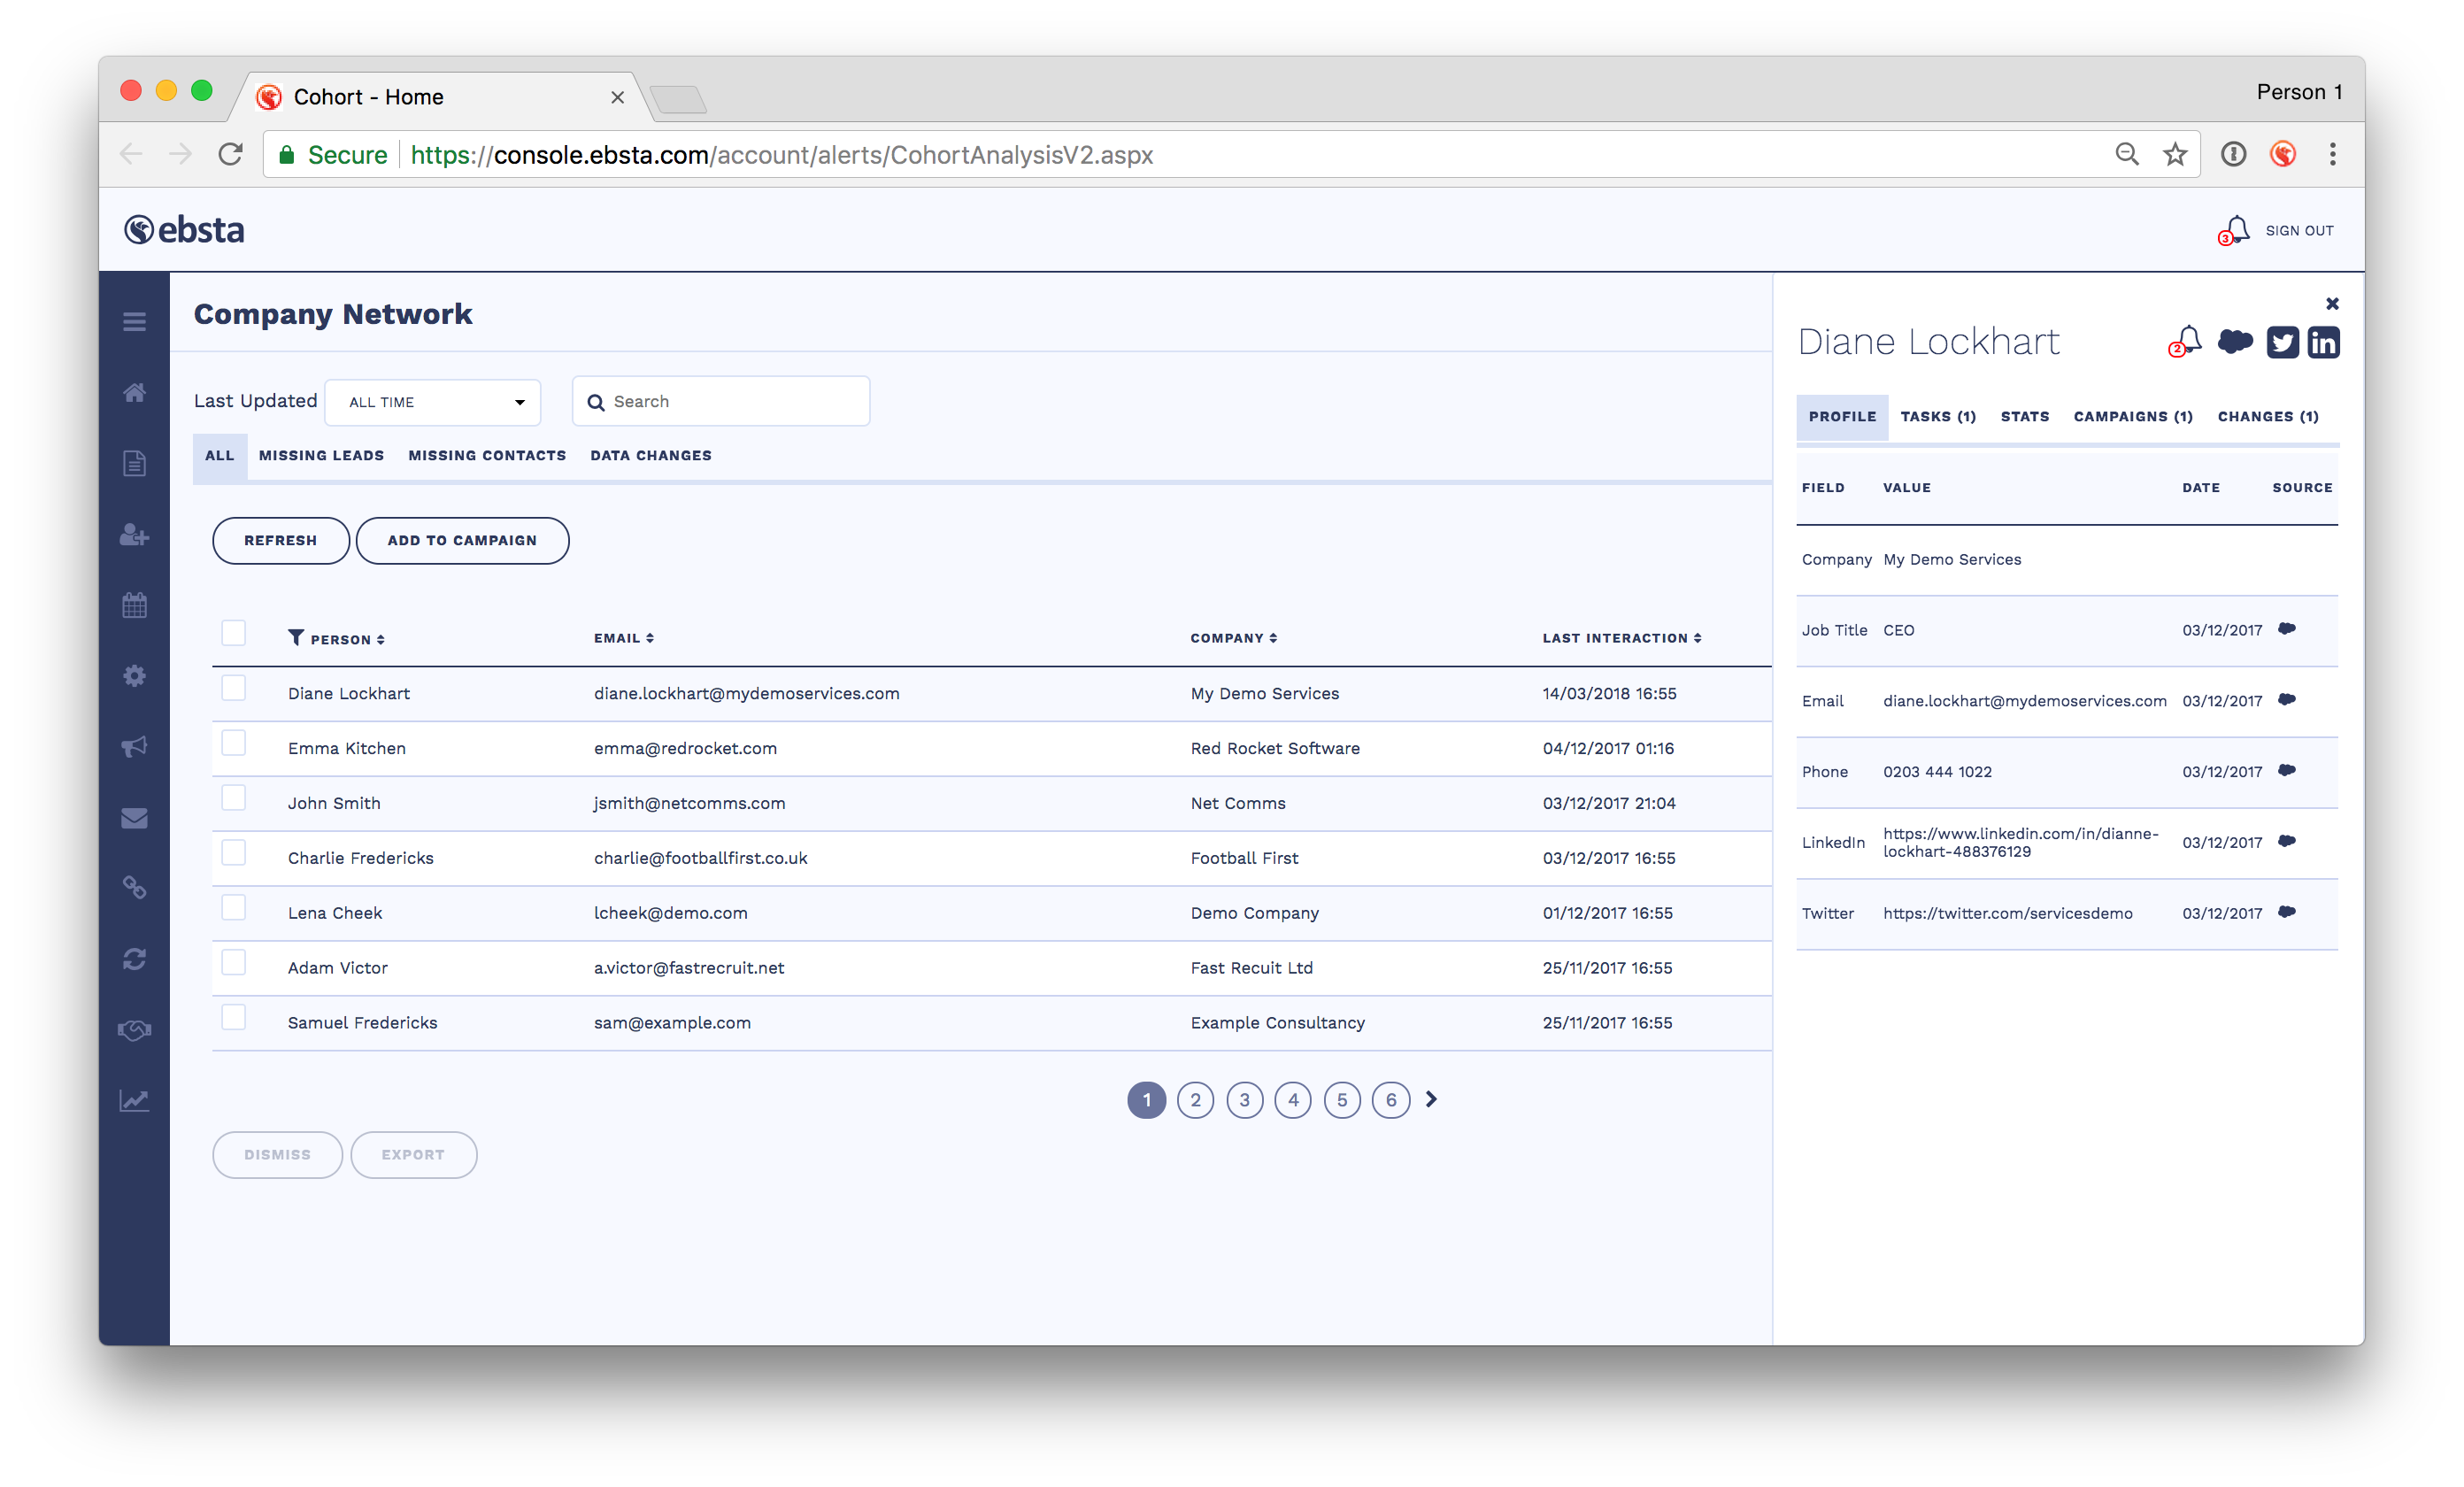 Ebsta screenshot: Ebsta helps users uncover contacts across their whole company